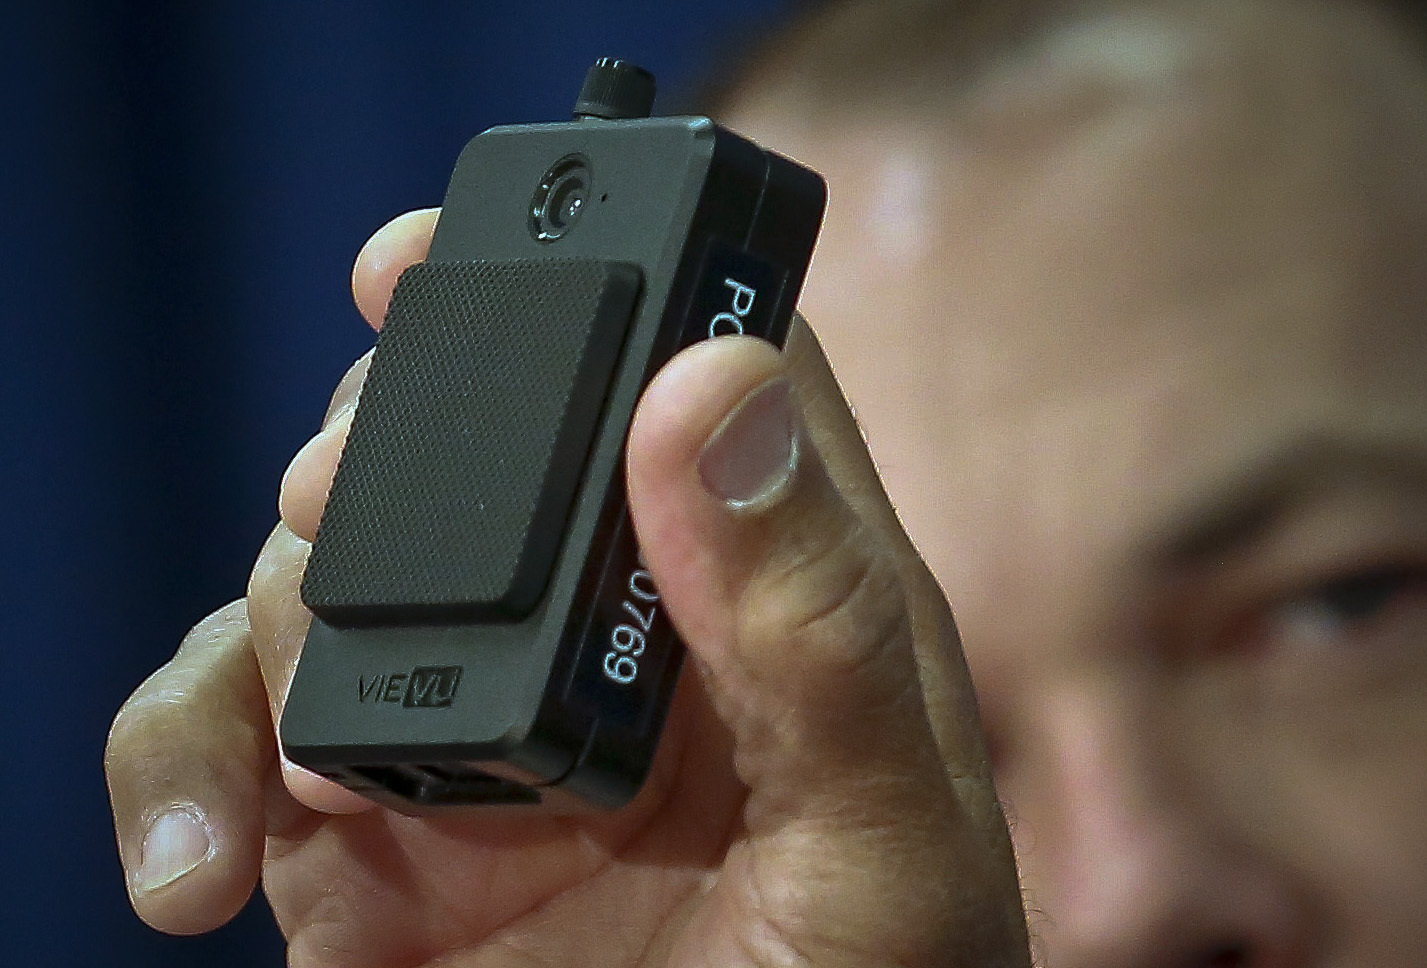 A man holds up a body camera to be used by the NYPD.